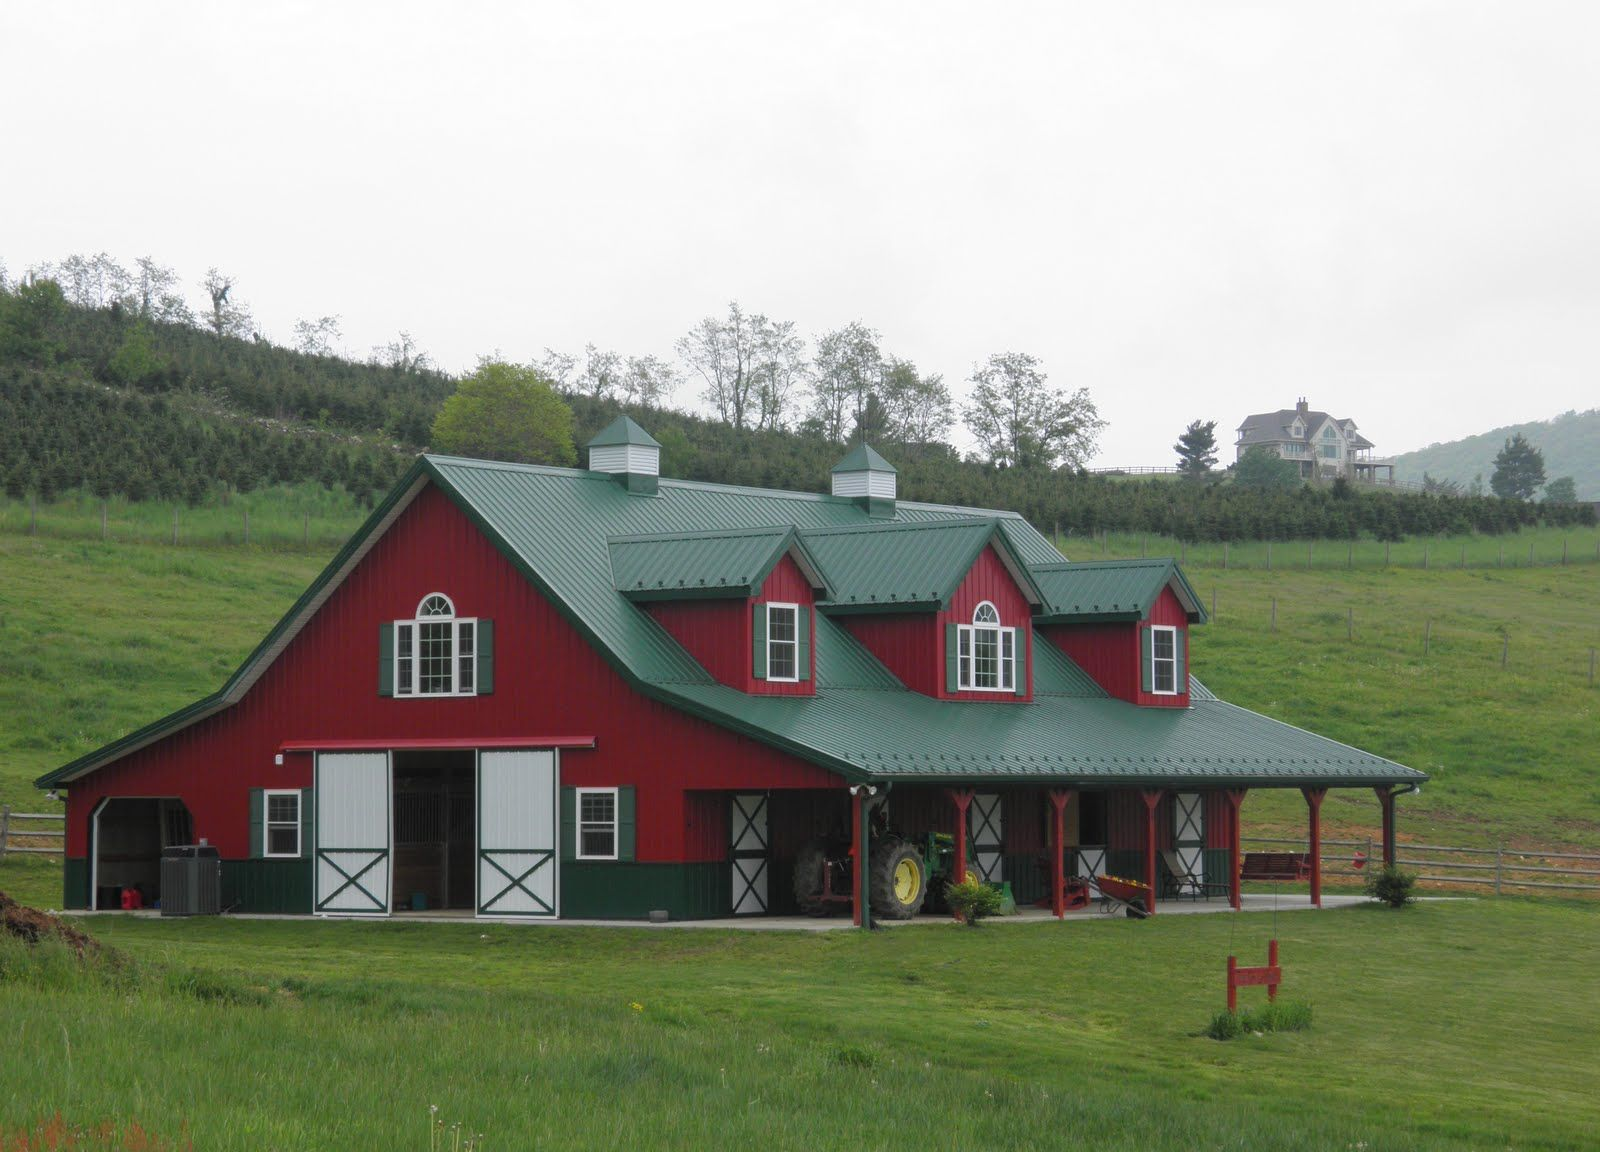 House that looks like red barn images at home in the for Barn house blueprints